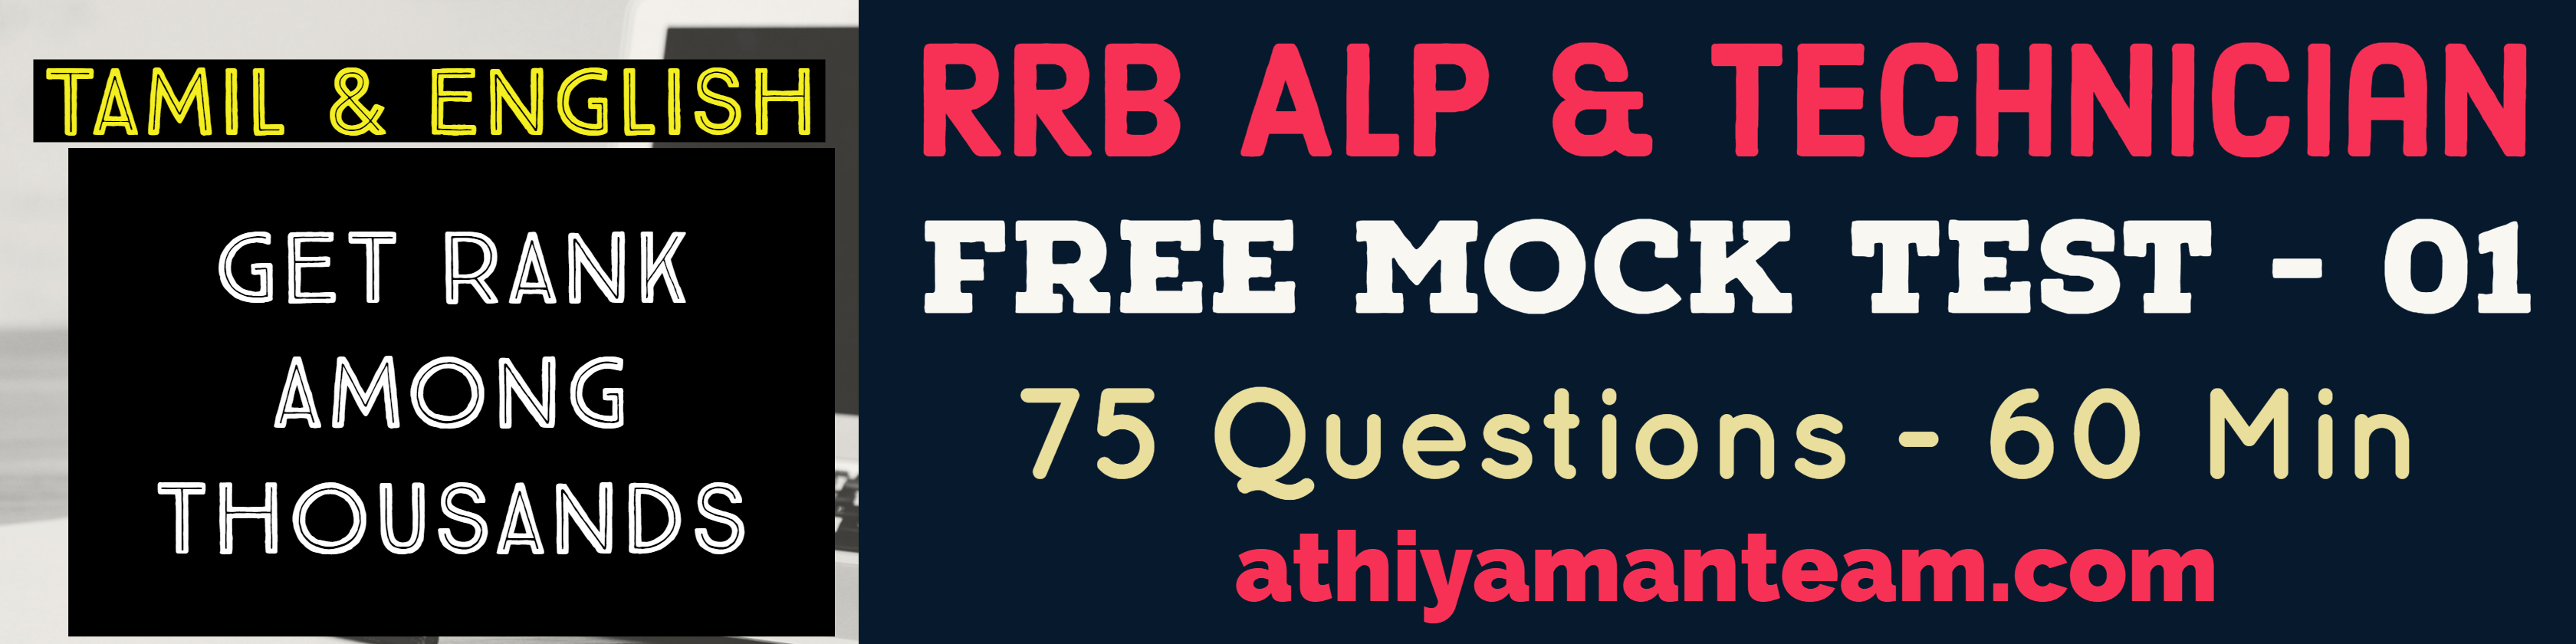 rrb alp exam question paper pdf in tamil